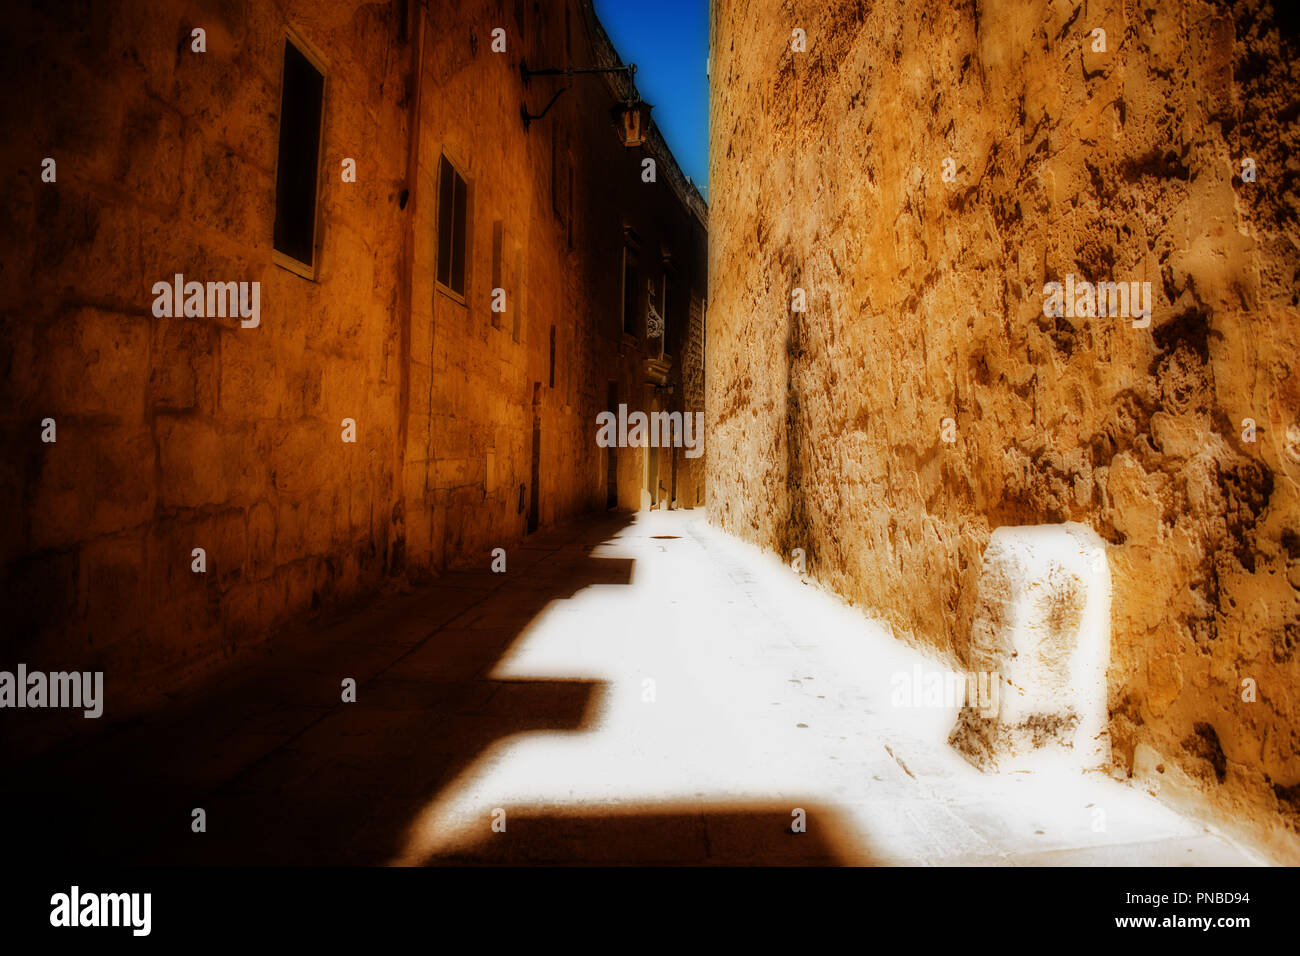 A typical and historical narrow road in Mdina, Malta under a hot blazing sunlight. - Stock Image